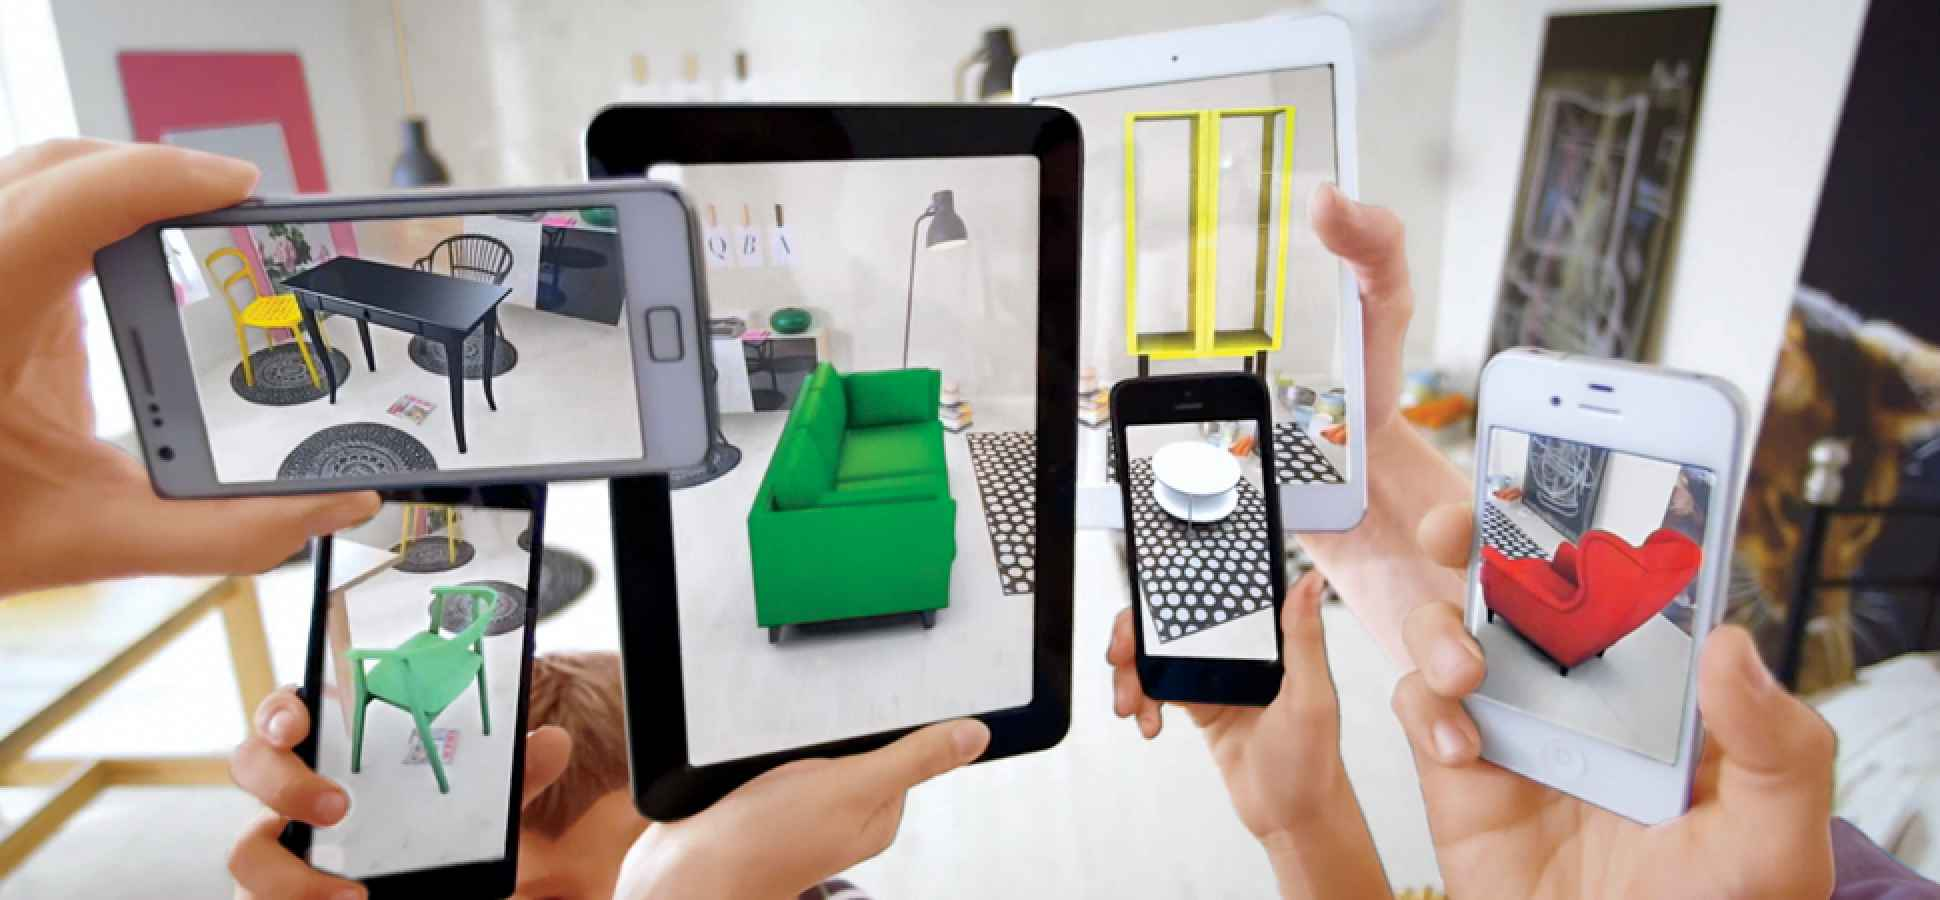 Augmented reality for businesses inc urtaz